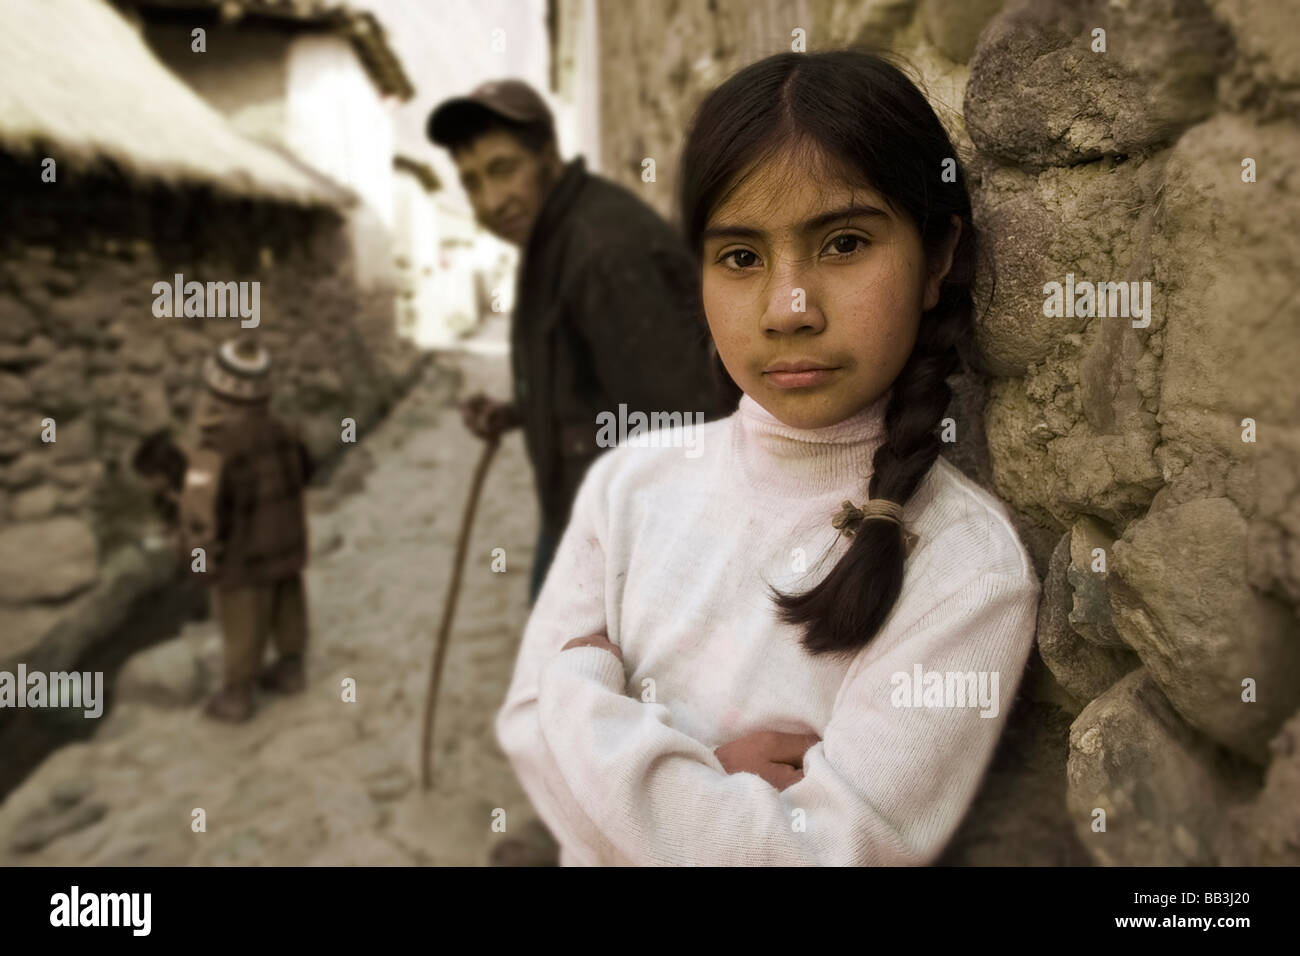 Girl with father and younger siblings in background, Ollantayambo, Peru. - Stock Image